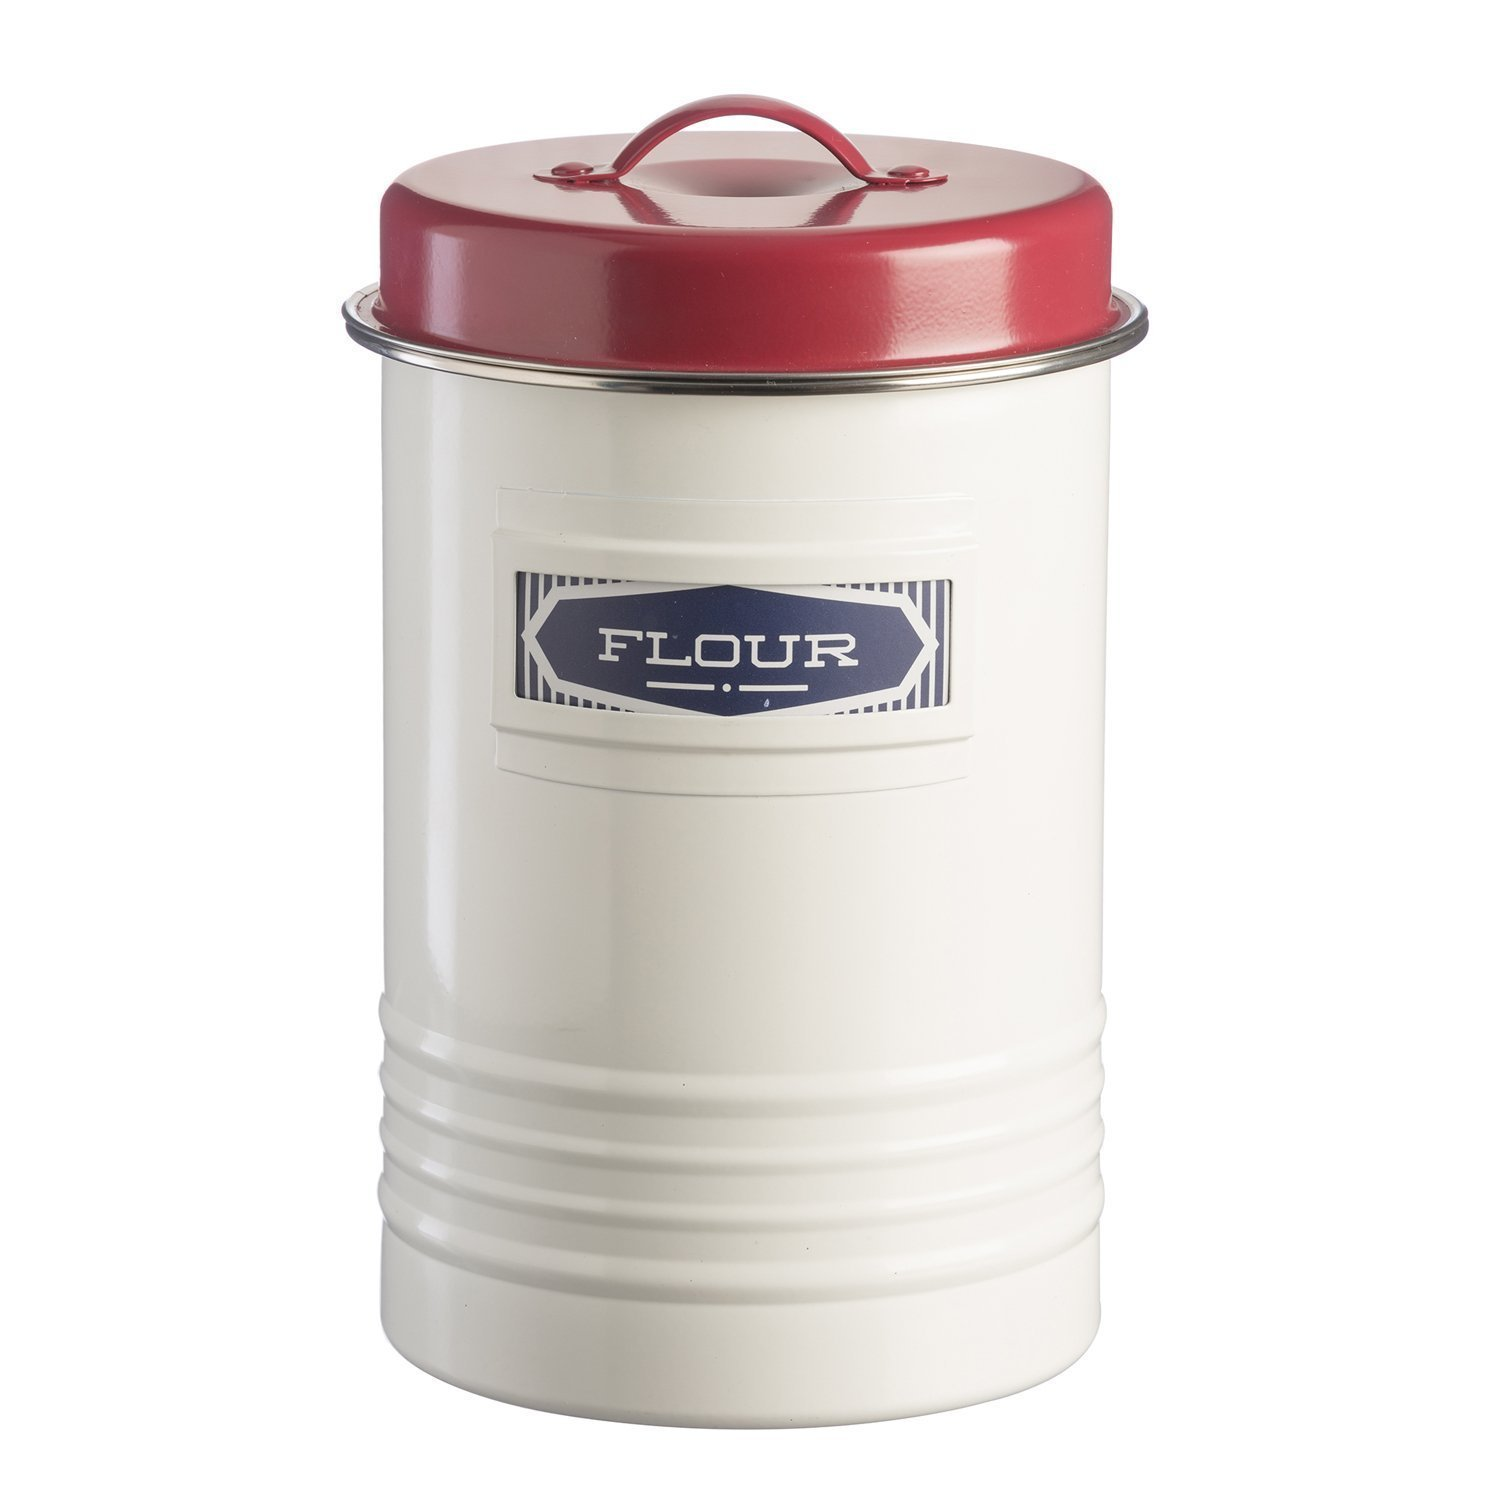 Typhoon Vintage Belmont Storage Tin, 104-Fluid Ounces, White, Red, Blue 1400.126